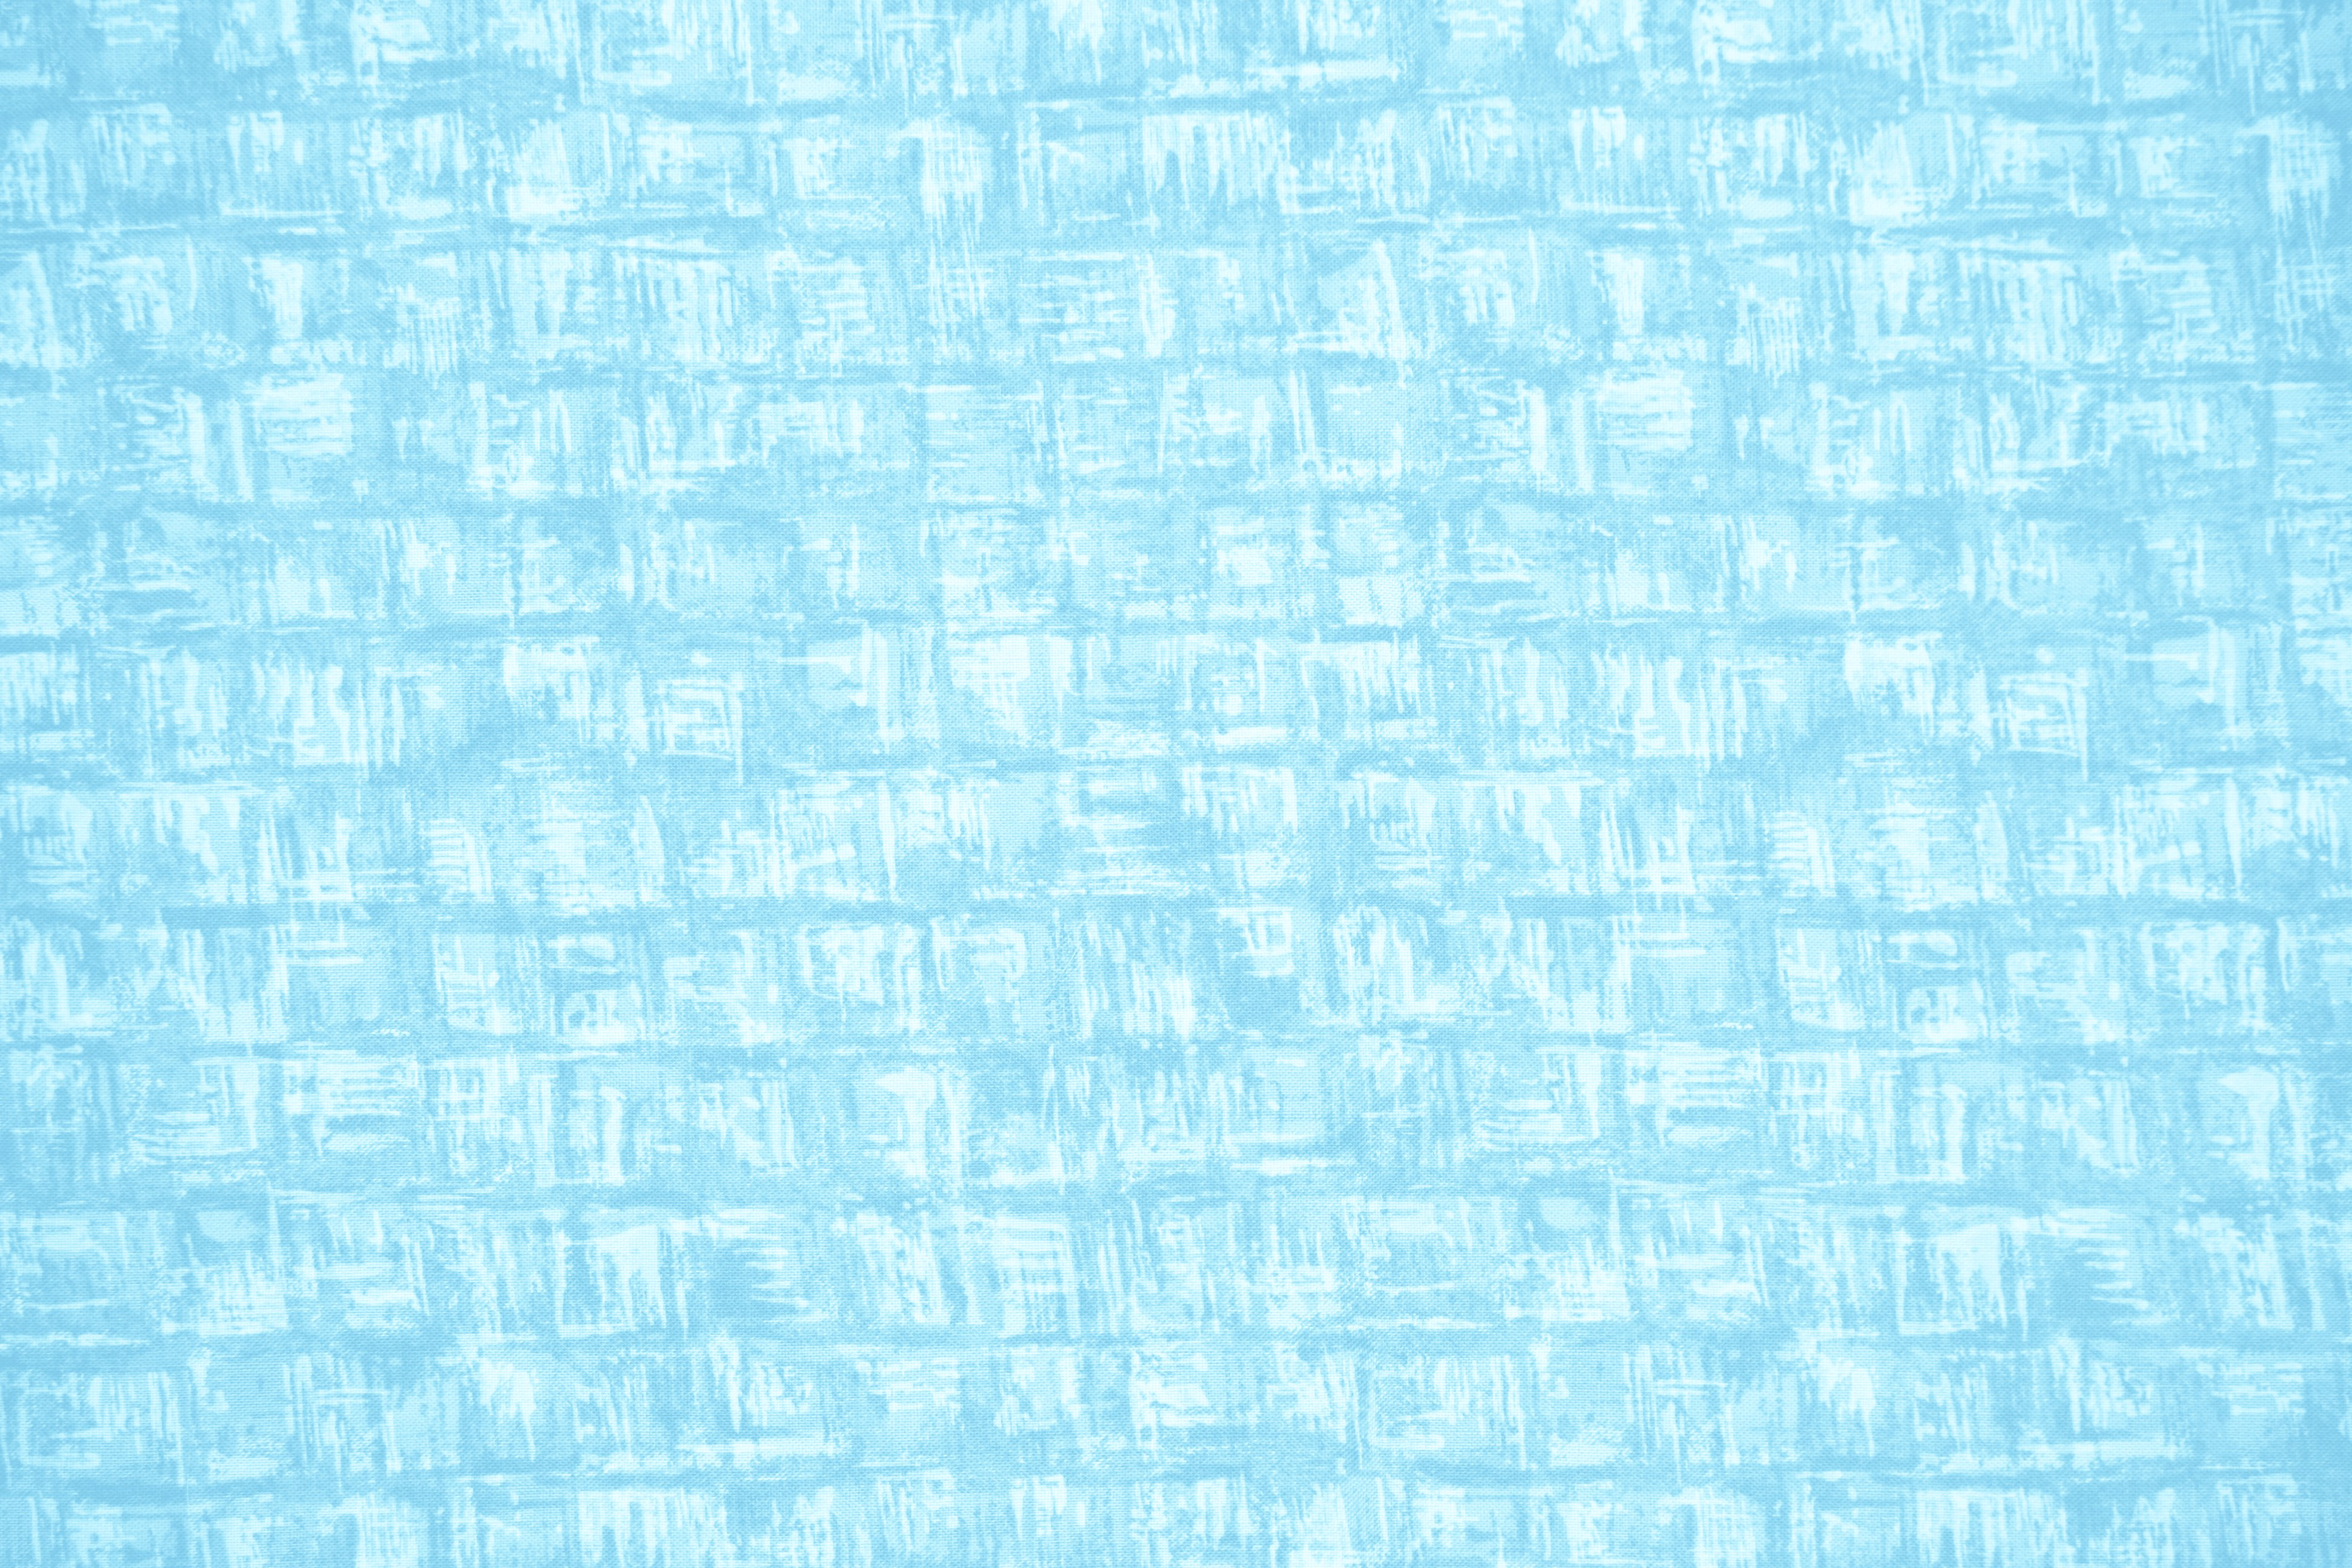 Baby Blue Abstract Squares Fabric Texture   High Resolution Photo 3888x2592